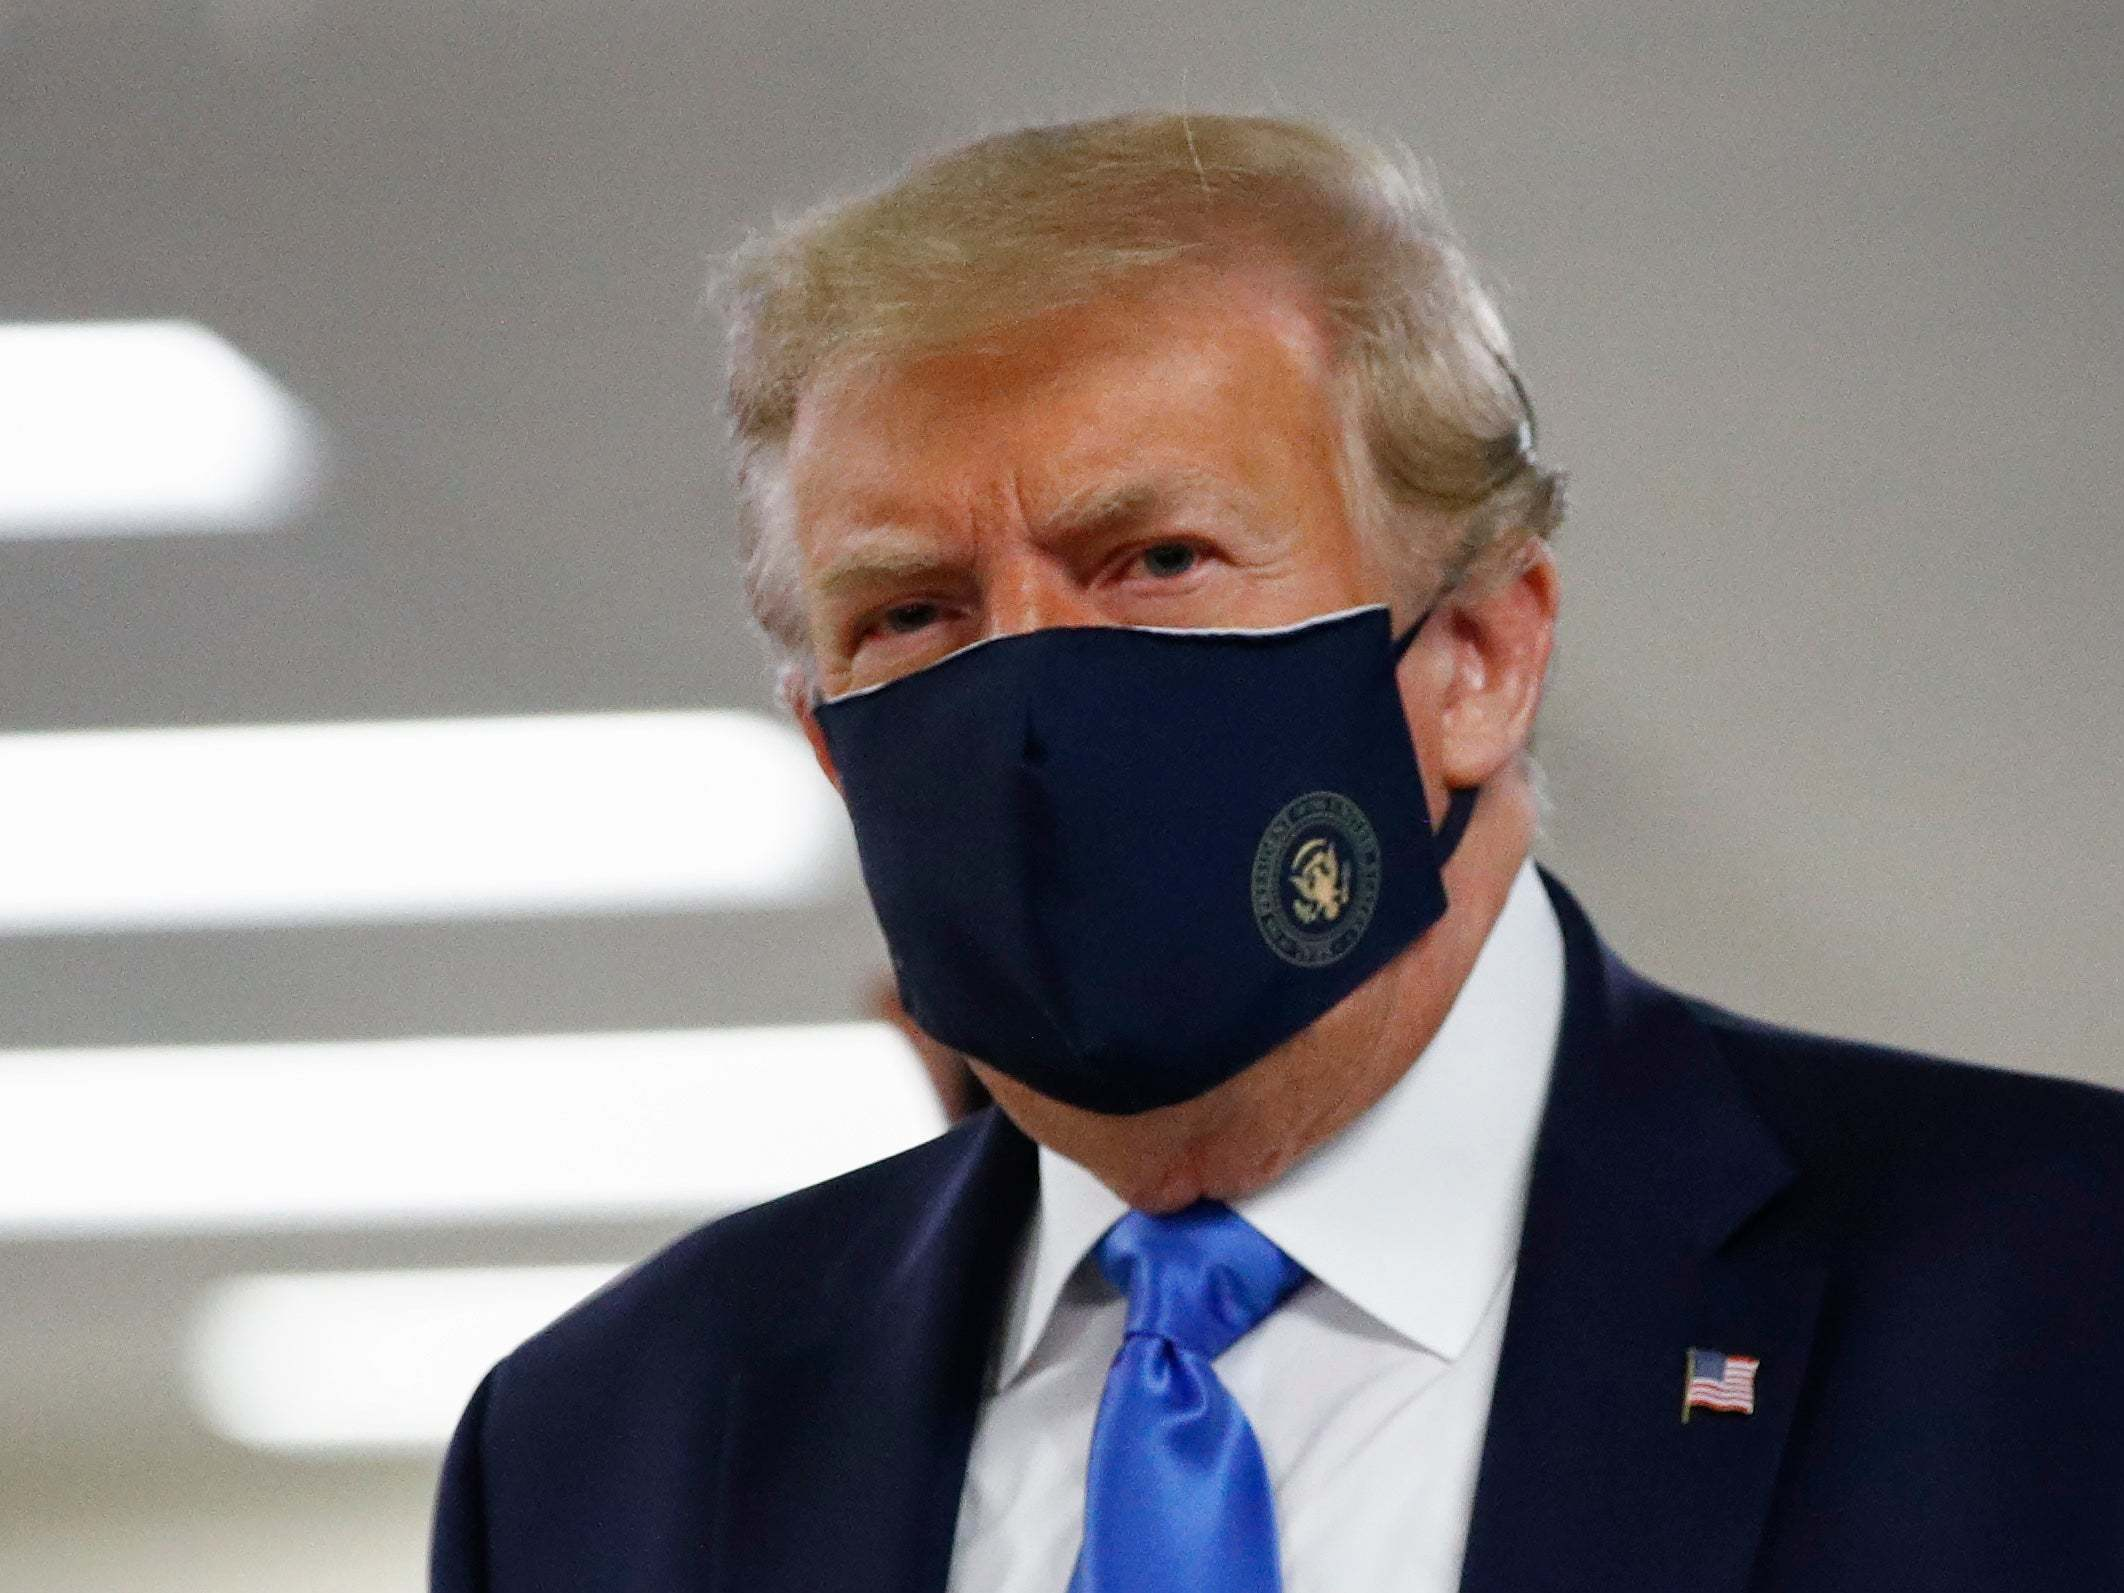 Trump news – live: President says 'shouldn't be hard' for Kanye West to siphon votes from Biden and wears mask in public for first time as coronavirus cases surge - The Independent